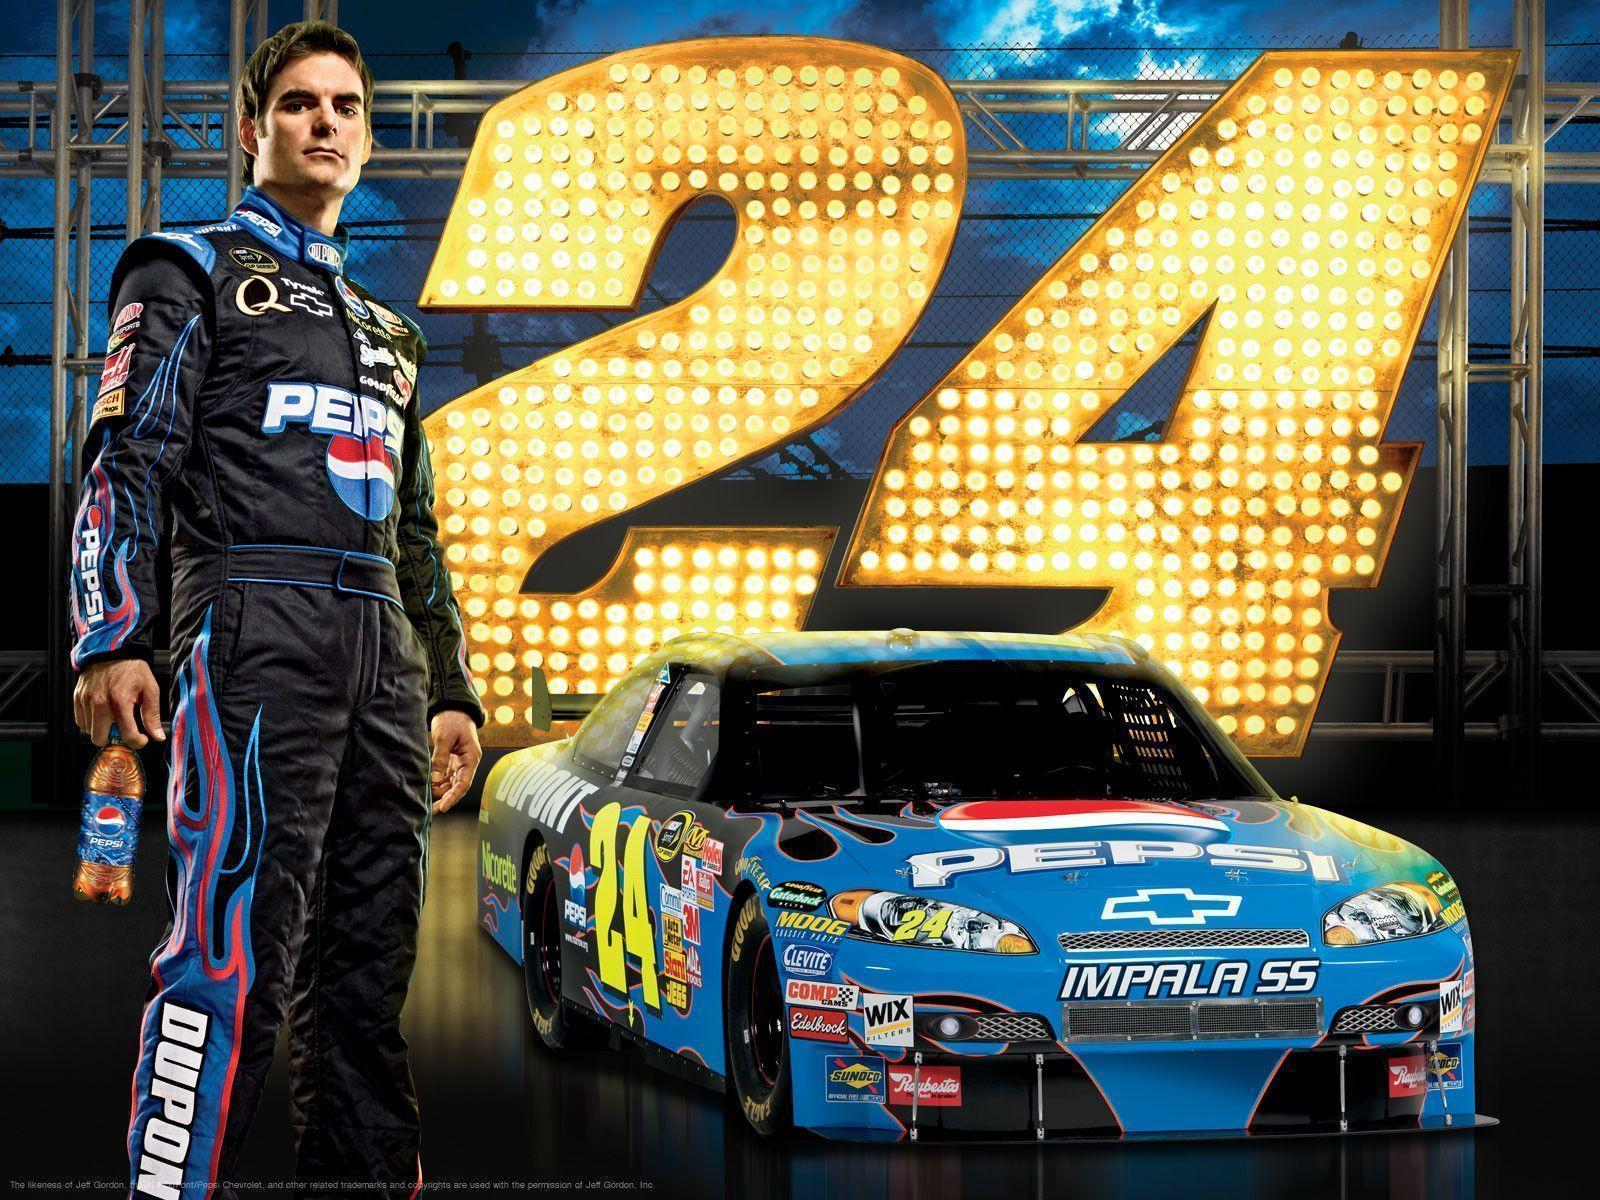 jeff gordon desktop wallpaper - photo #13